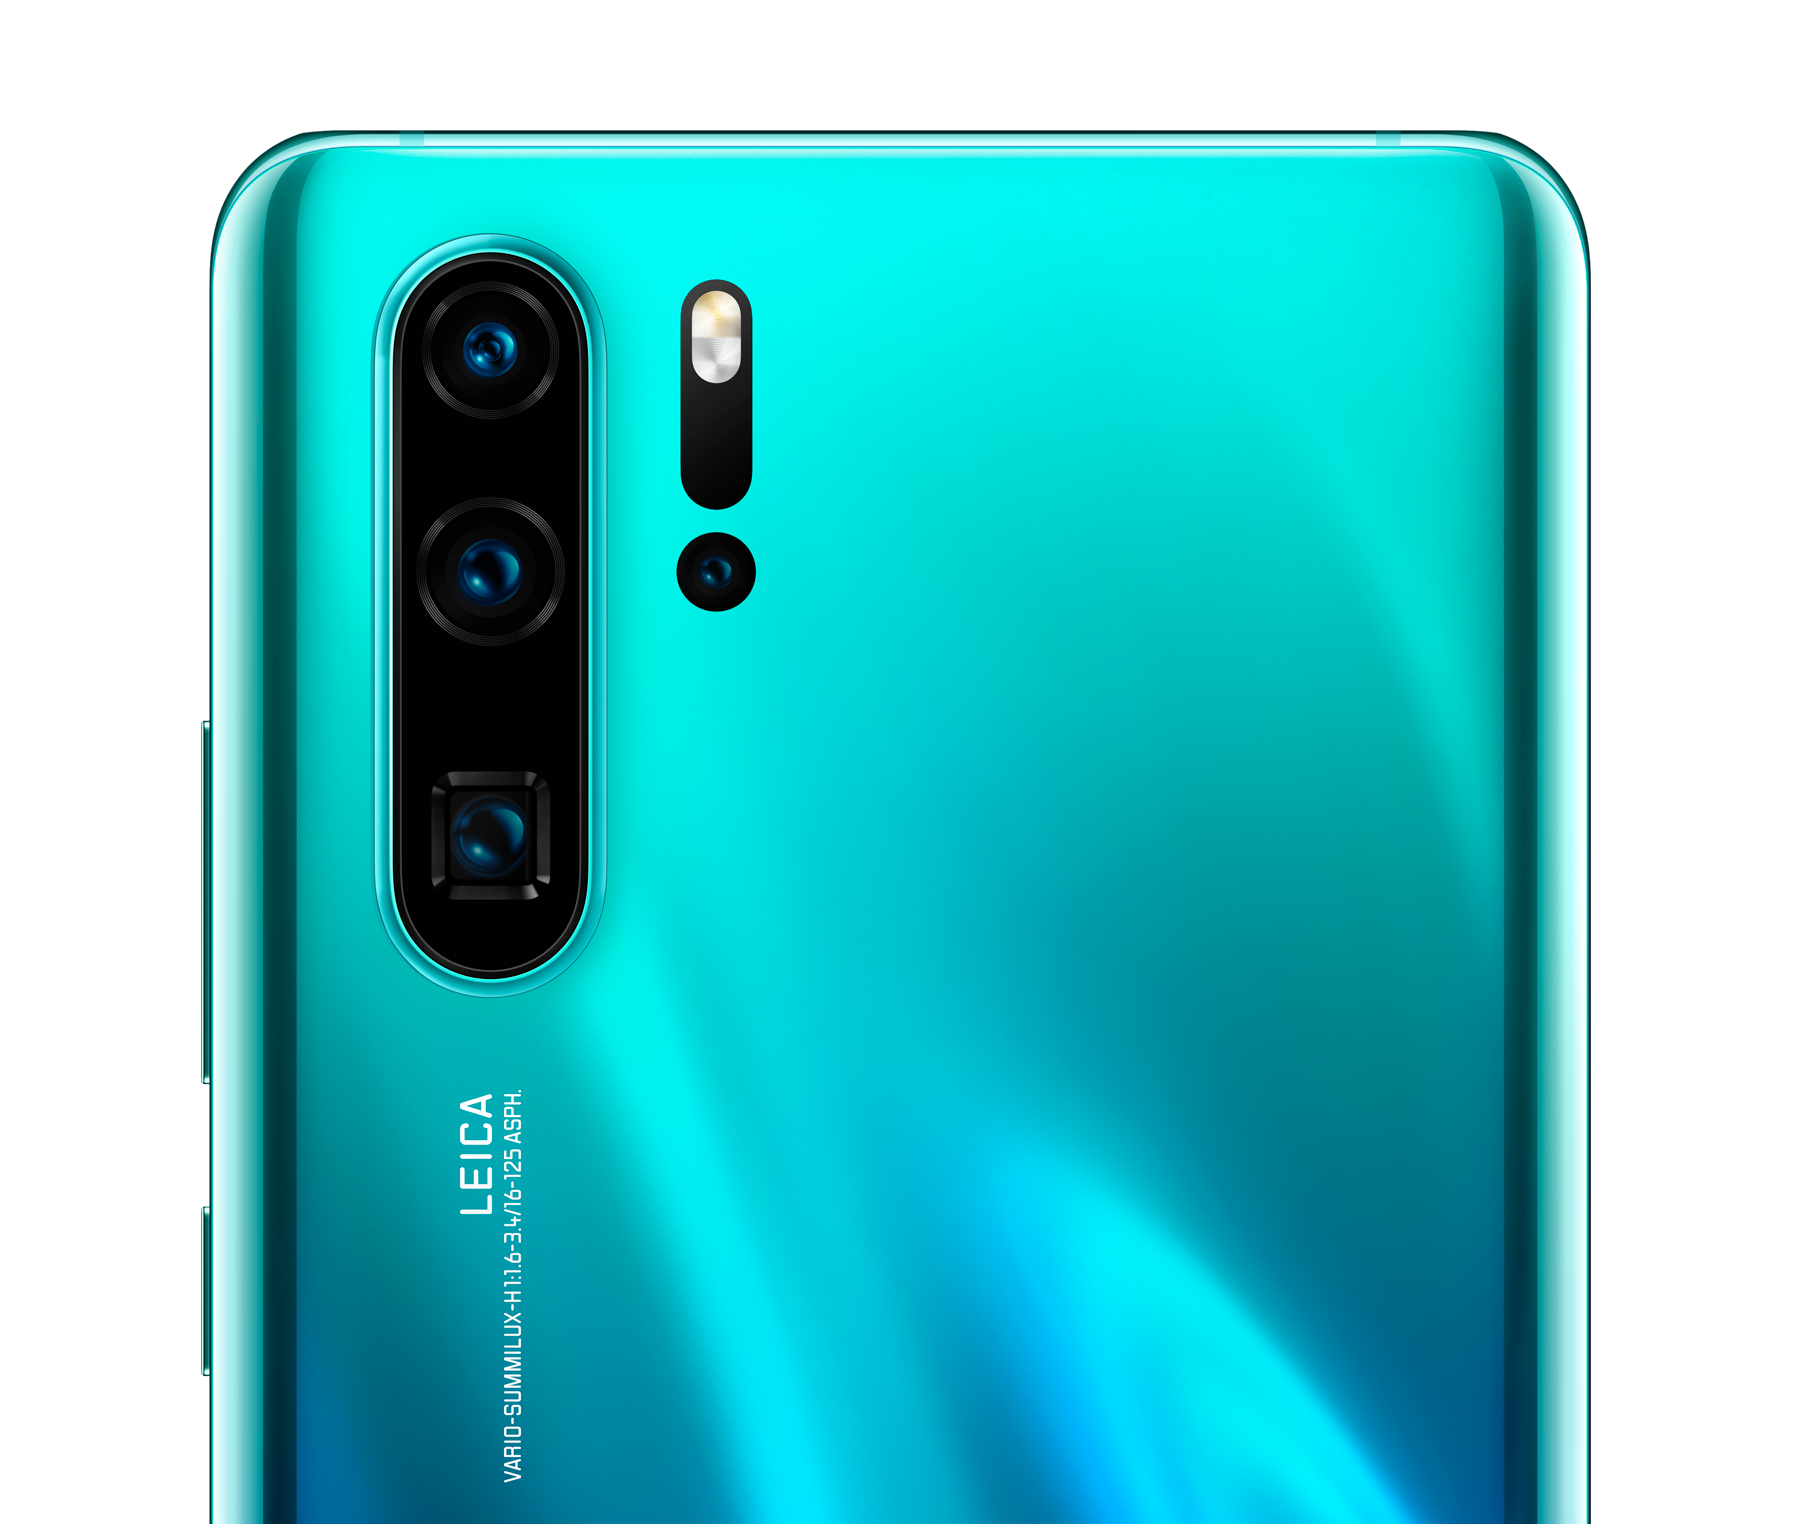 SFR_SFR-Capturer-plus-beaux-moments-avec-Huawei-P30-P30Pro_26032019_BLOG-Huawei-P30-002.png